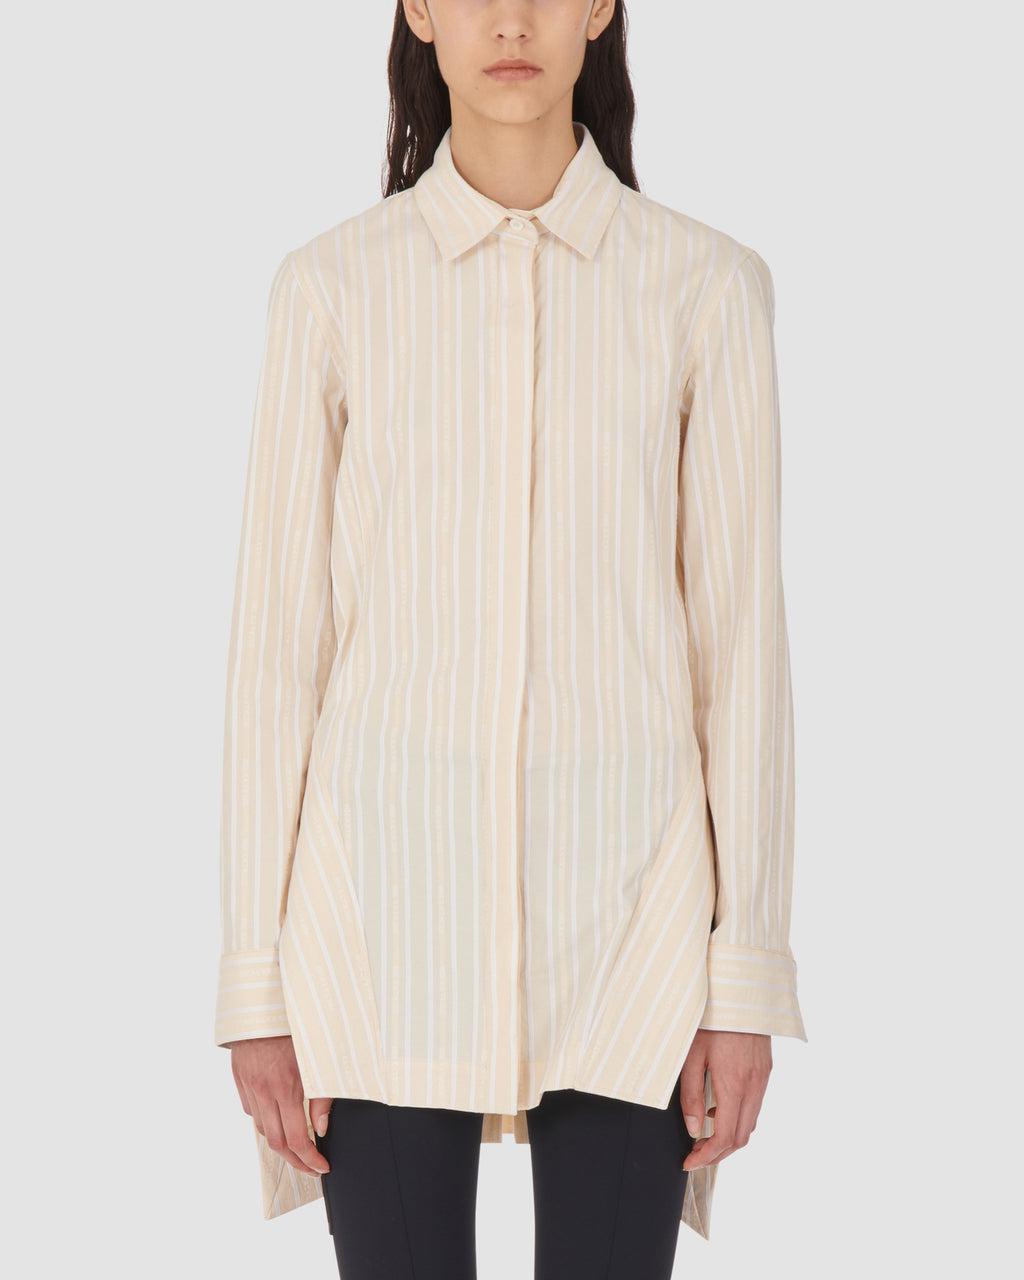 1017 ALYX 9SM | ANNINA BUTTON UP | Shirt | Google Shopping, IVORY, S20, Shirts, SS20, TOPS & SHIRTS, Woman, WOMEN